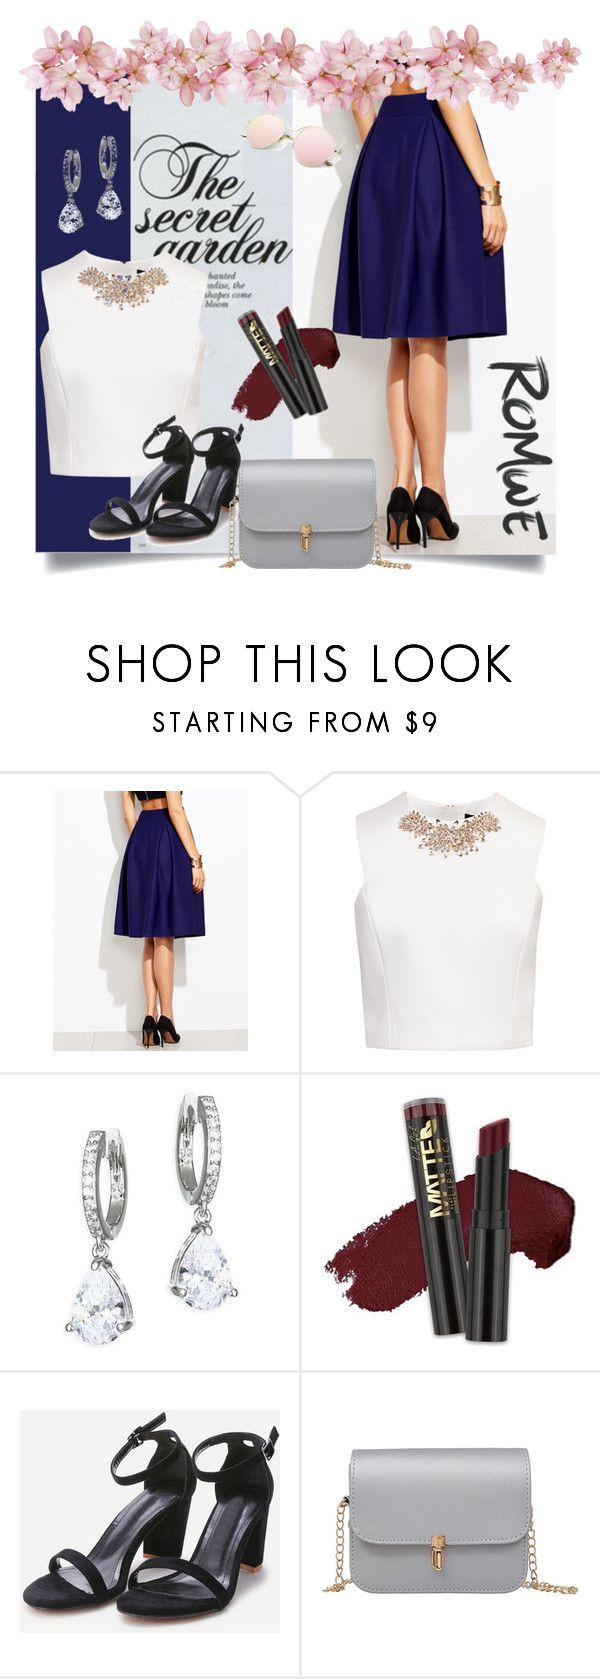 """Romwe"" by kanita-b ❤ liked on Polyvore featuring Ted Baker, Kate Spade and L.A. Girl"